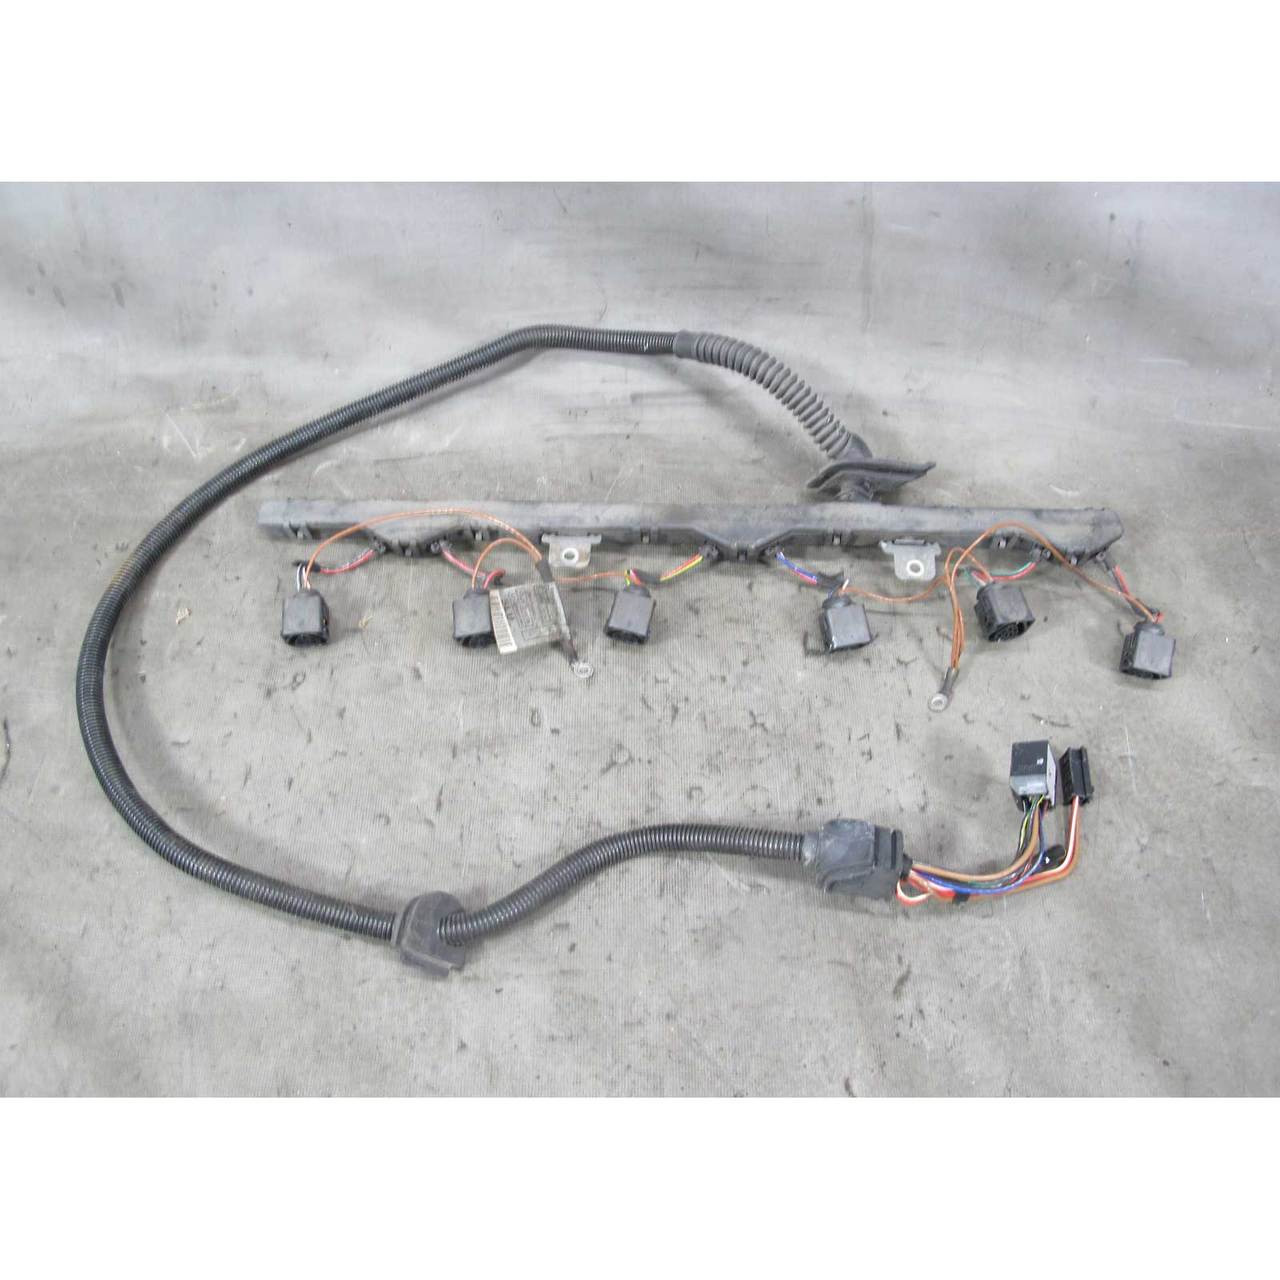 small resolution of 2003 2006 bmw e46 325i sulev m56 2 5l engine ignition coil wiring harness oem